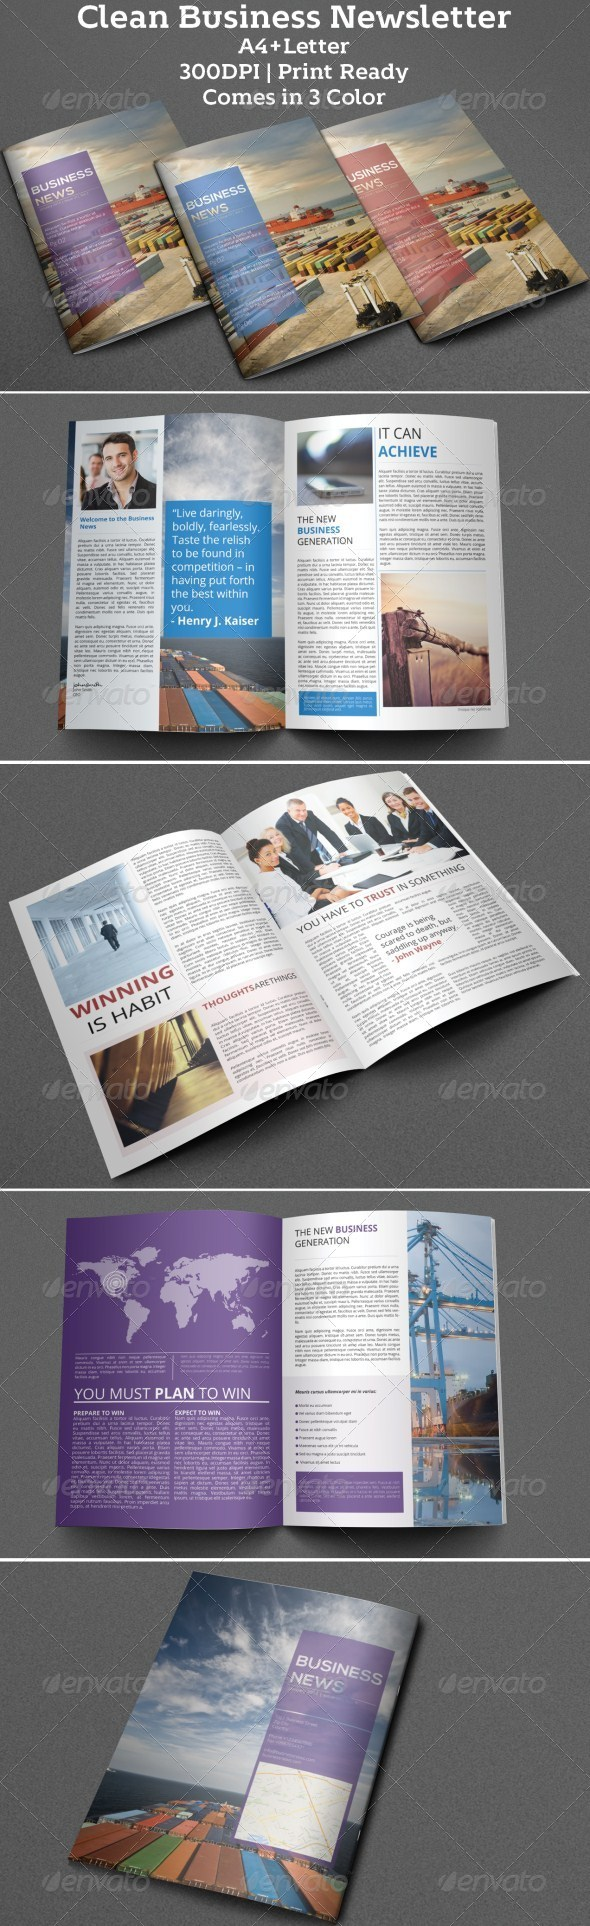 GraphicRiver Clean Business Newsletter 6247343